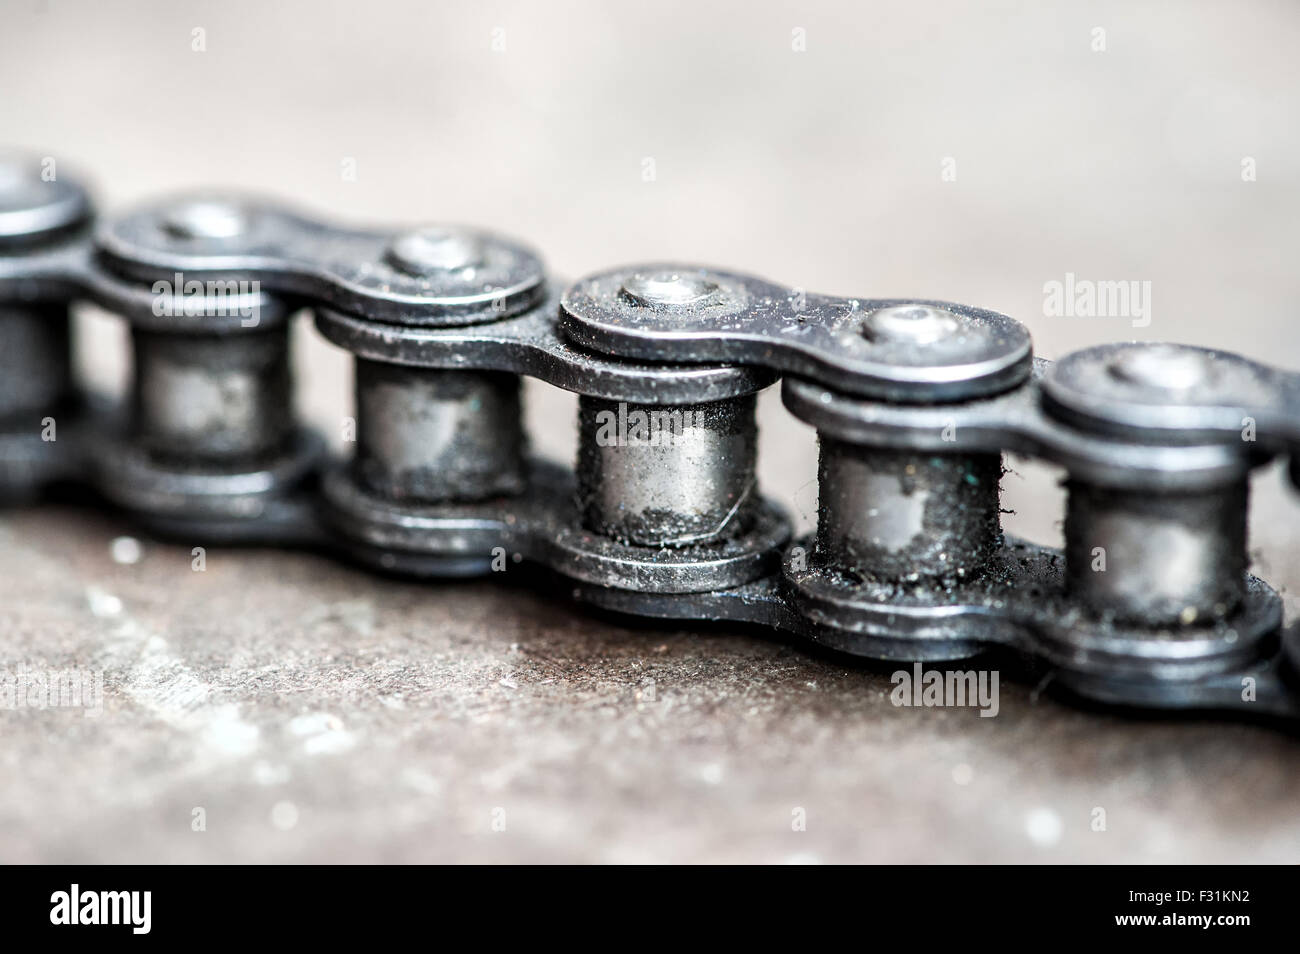 Grungy dirty chain detail of the links of an industrial chain - Stock Image